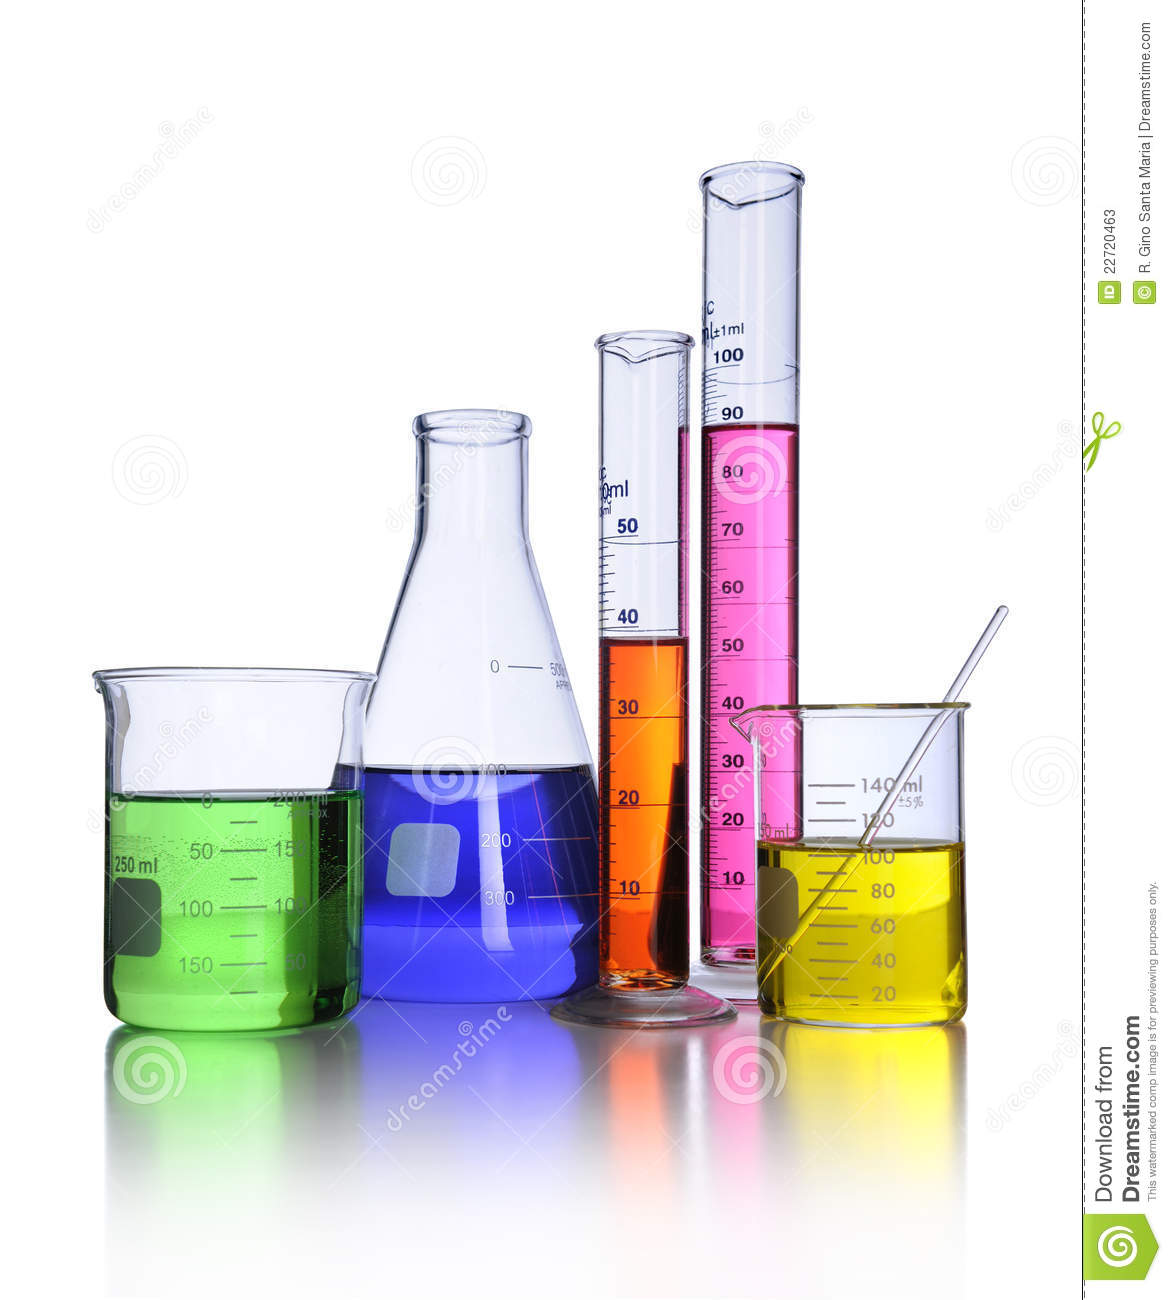 an introduction to the analysis of the experiment with test tubes I introduction a objective the purpose of this experiment is to thin-layer chromatography – analysis of analgesics five 13×100 test tubes will be.